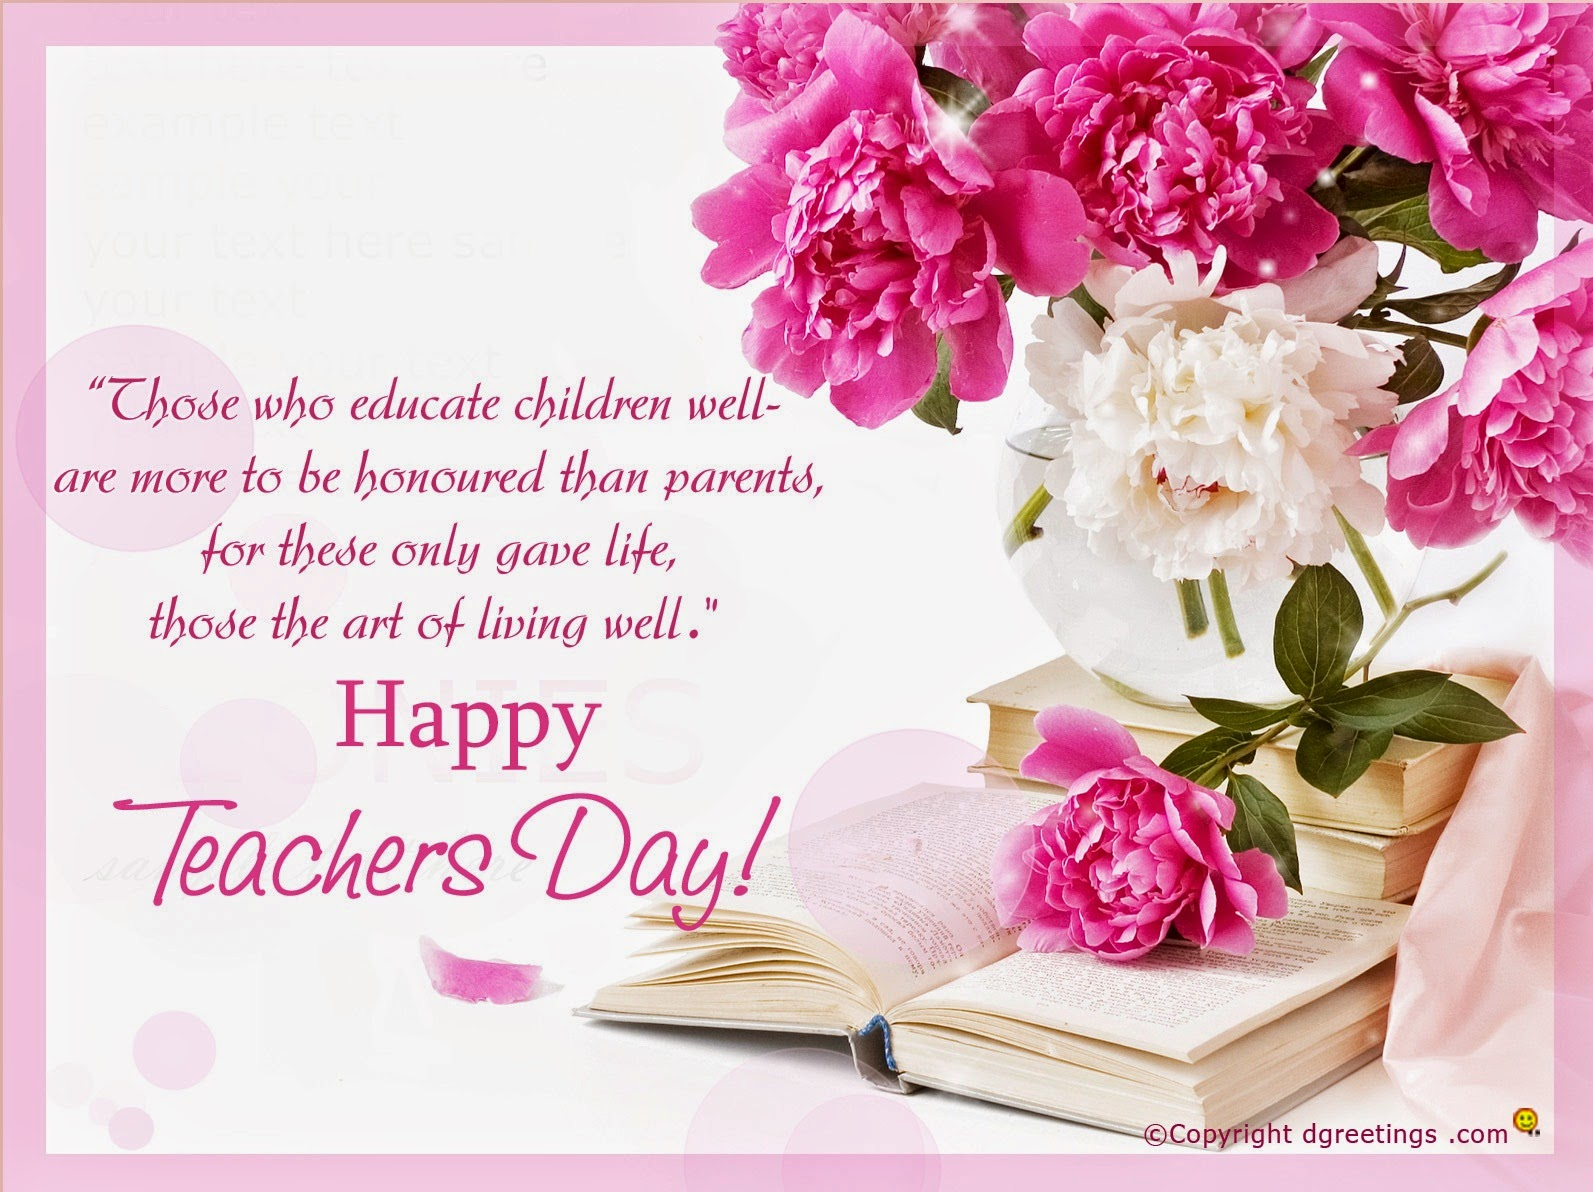 facebook teachers day pictures, mothers day images